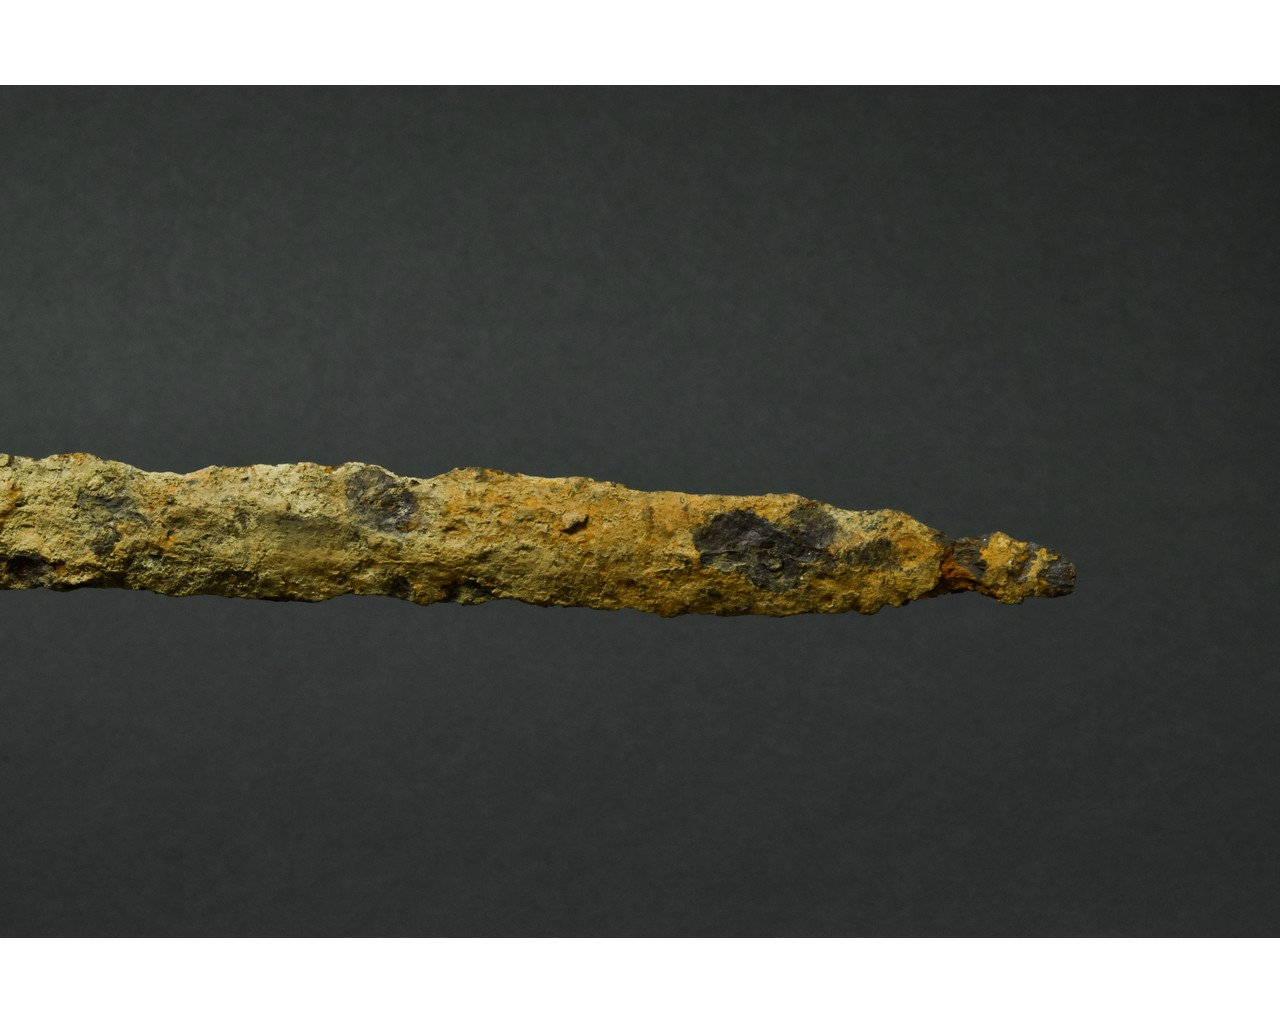 MEDIEVAL MIGRATION PERIOD IRON SWORD - Image 4 of 4